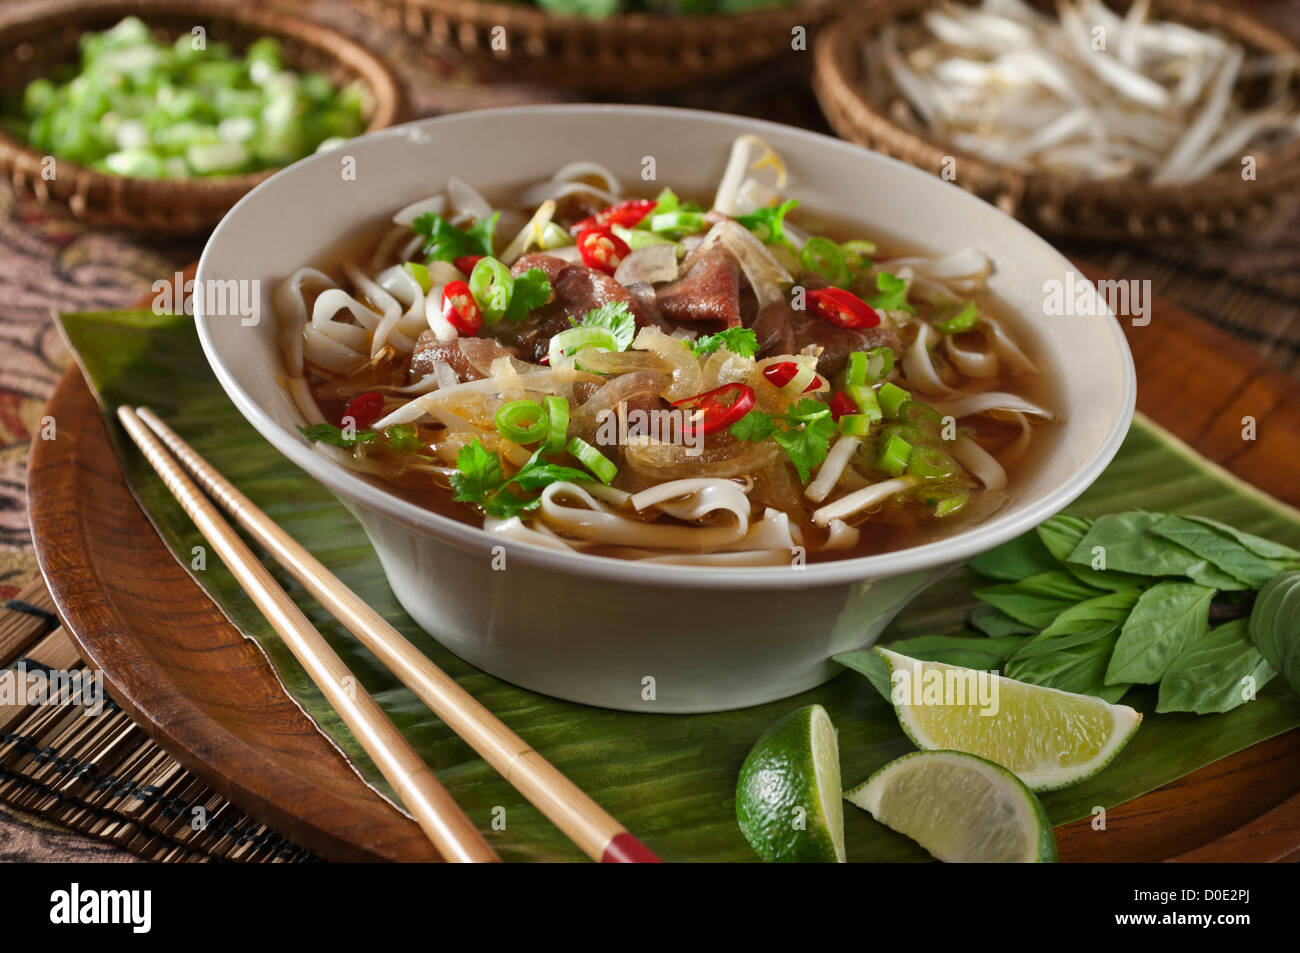 Pho Bo Beef and noodle soup Vietnam Food Stock Photo